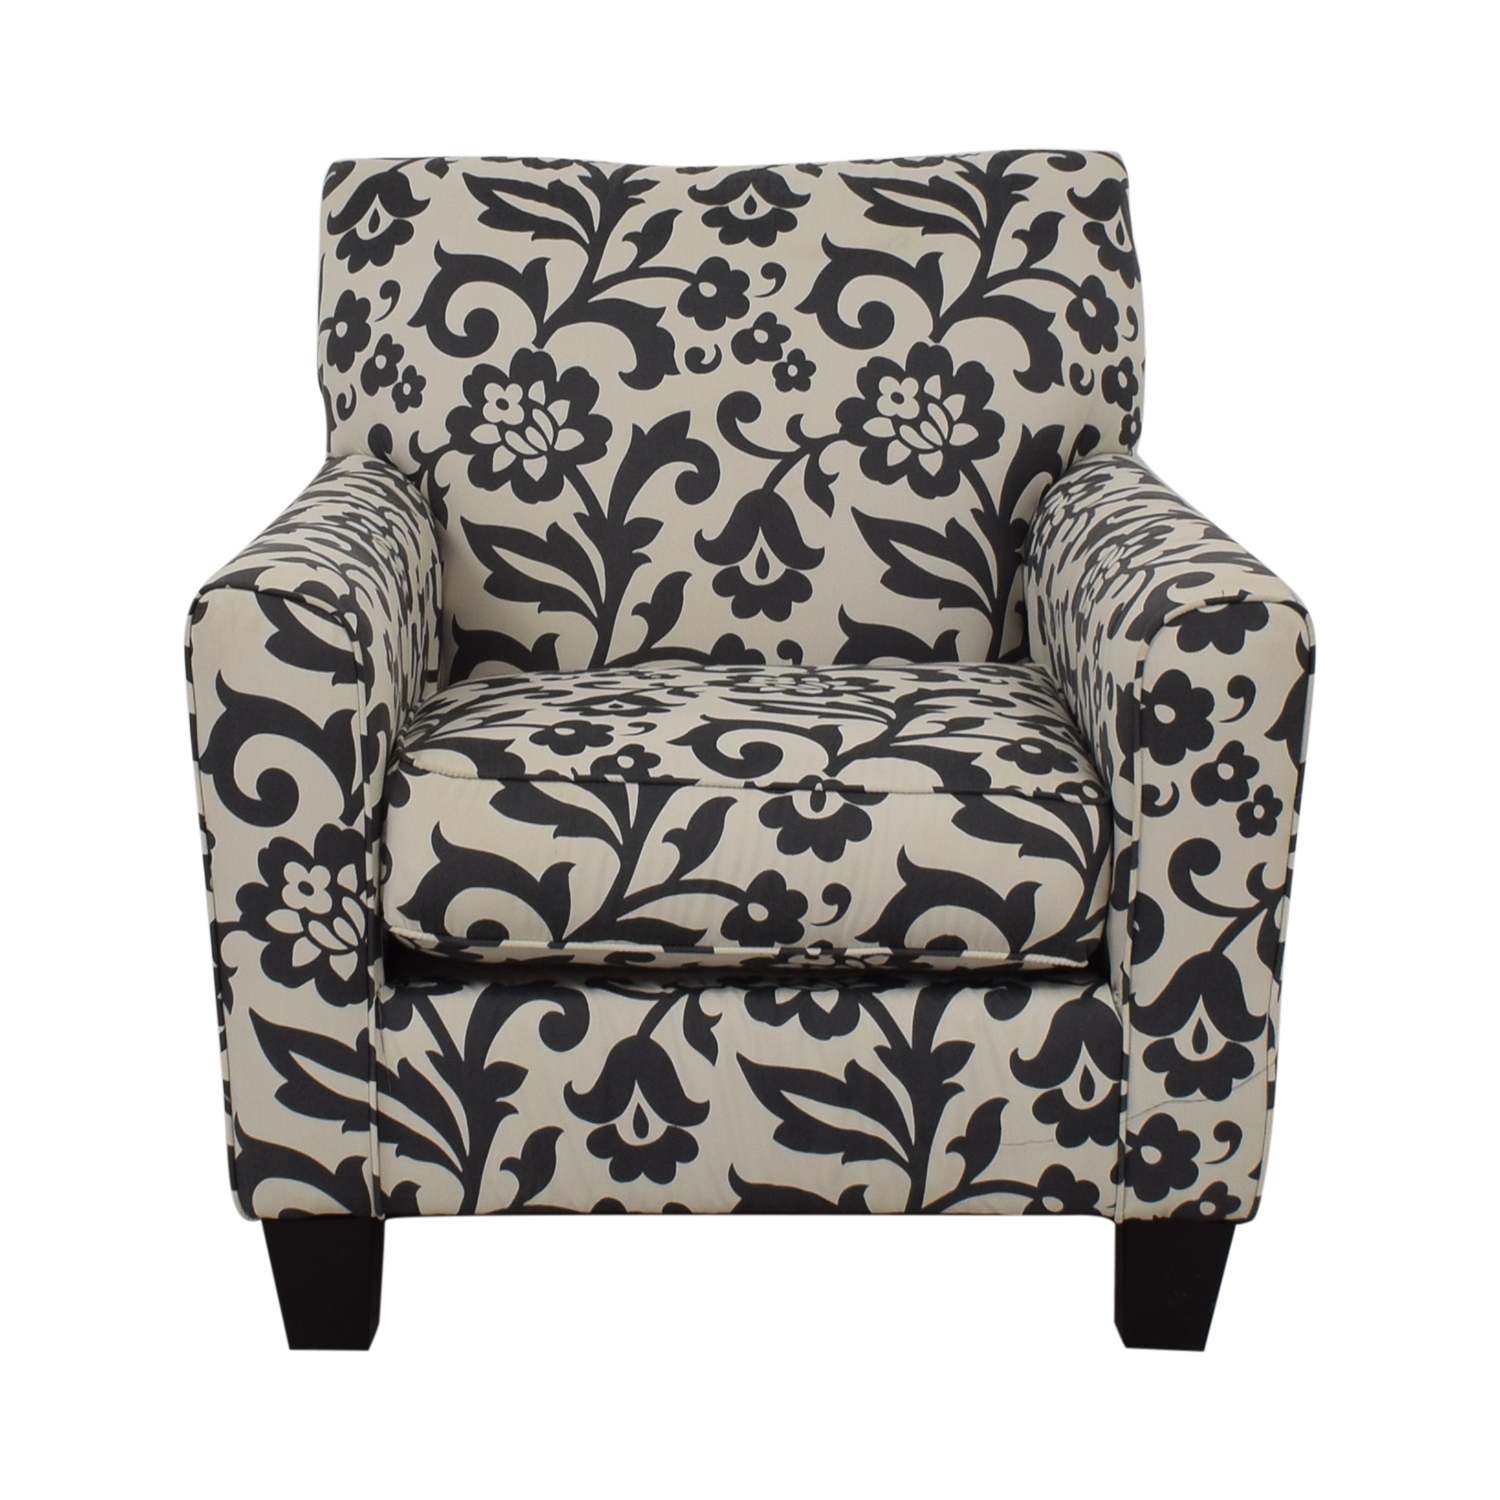 Ashley Chairs 88 Off Ashley Furniture Ashley Furniture Floral Armchair Chairs